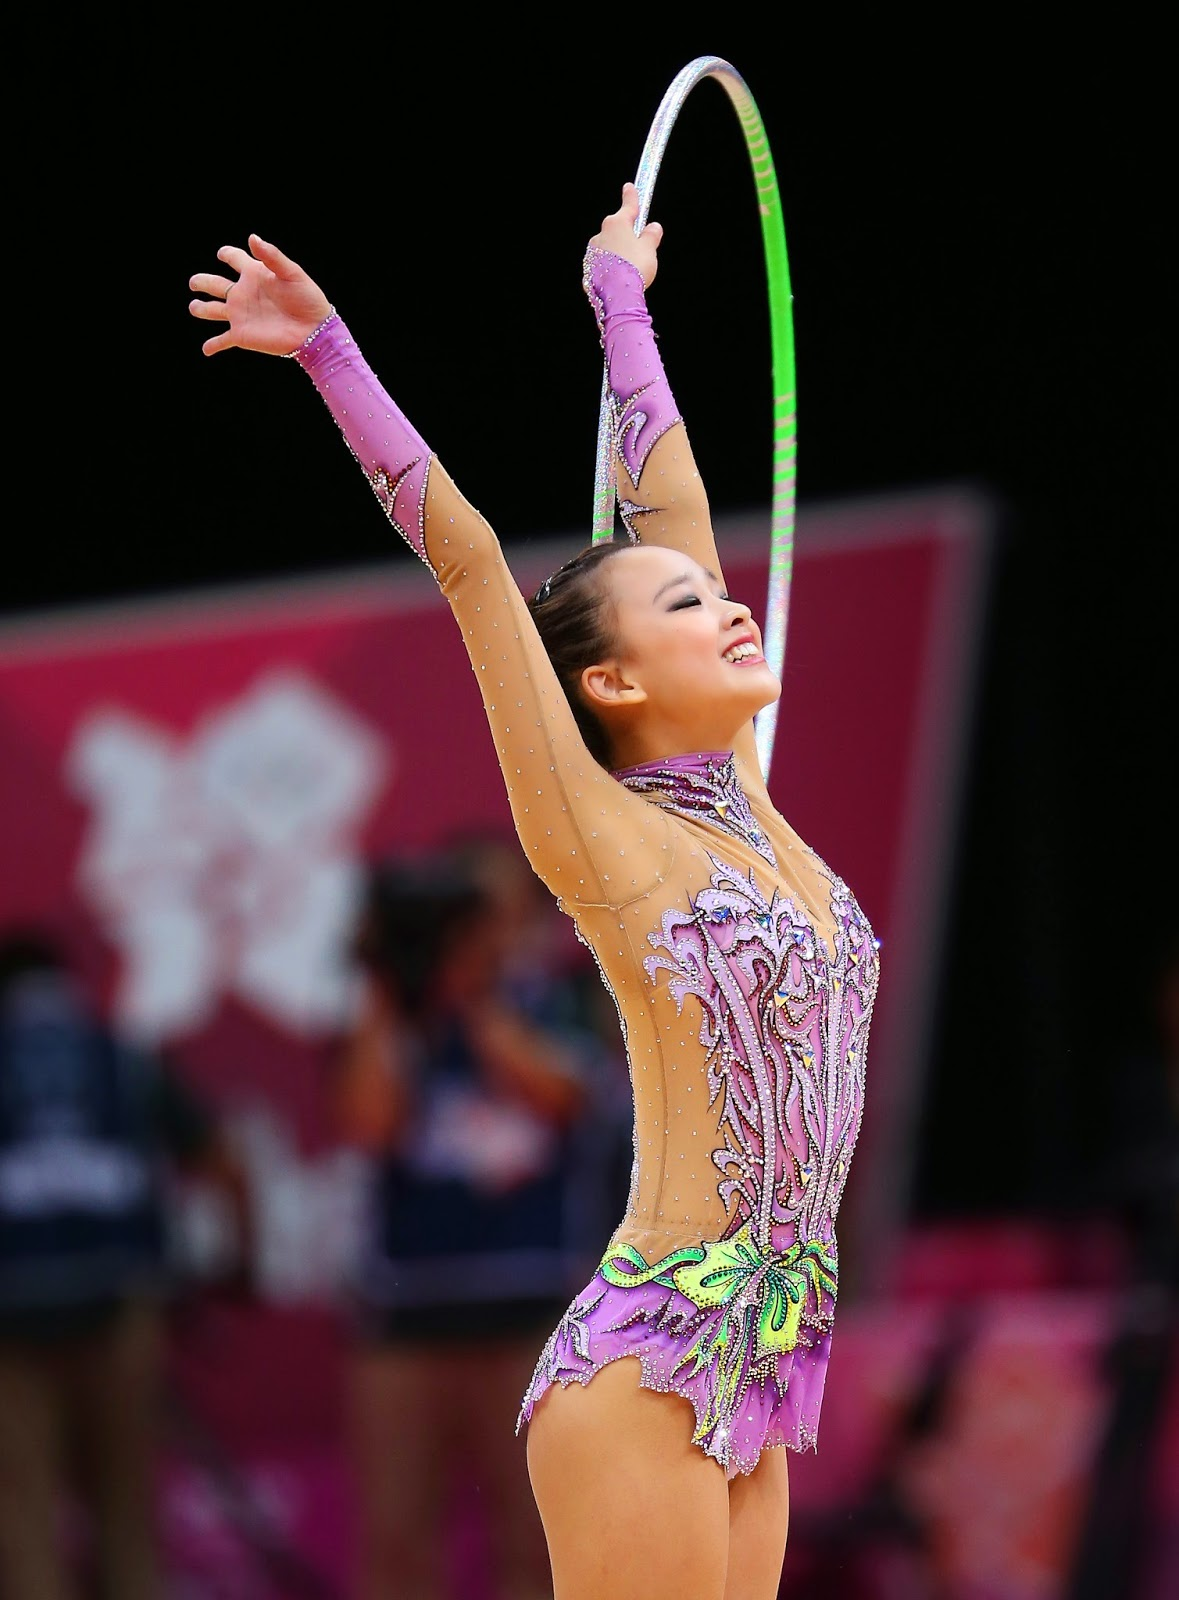 son yeon-jae hot korean rhythmic gymnast 01